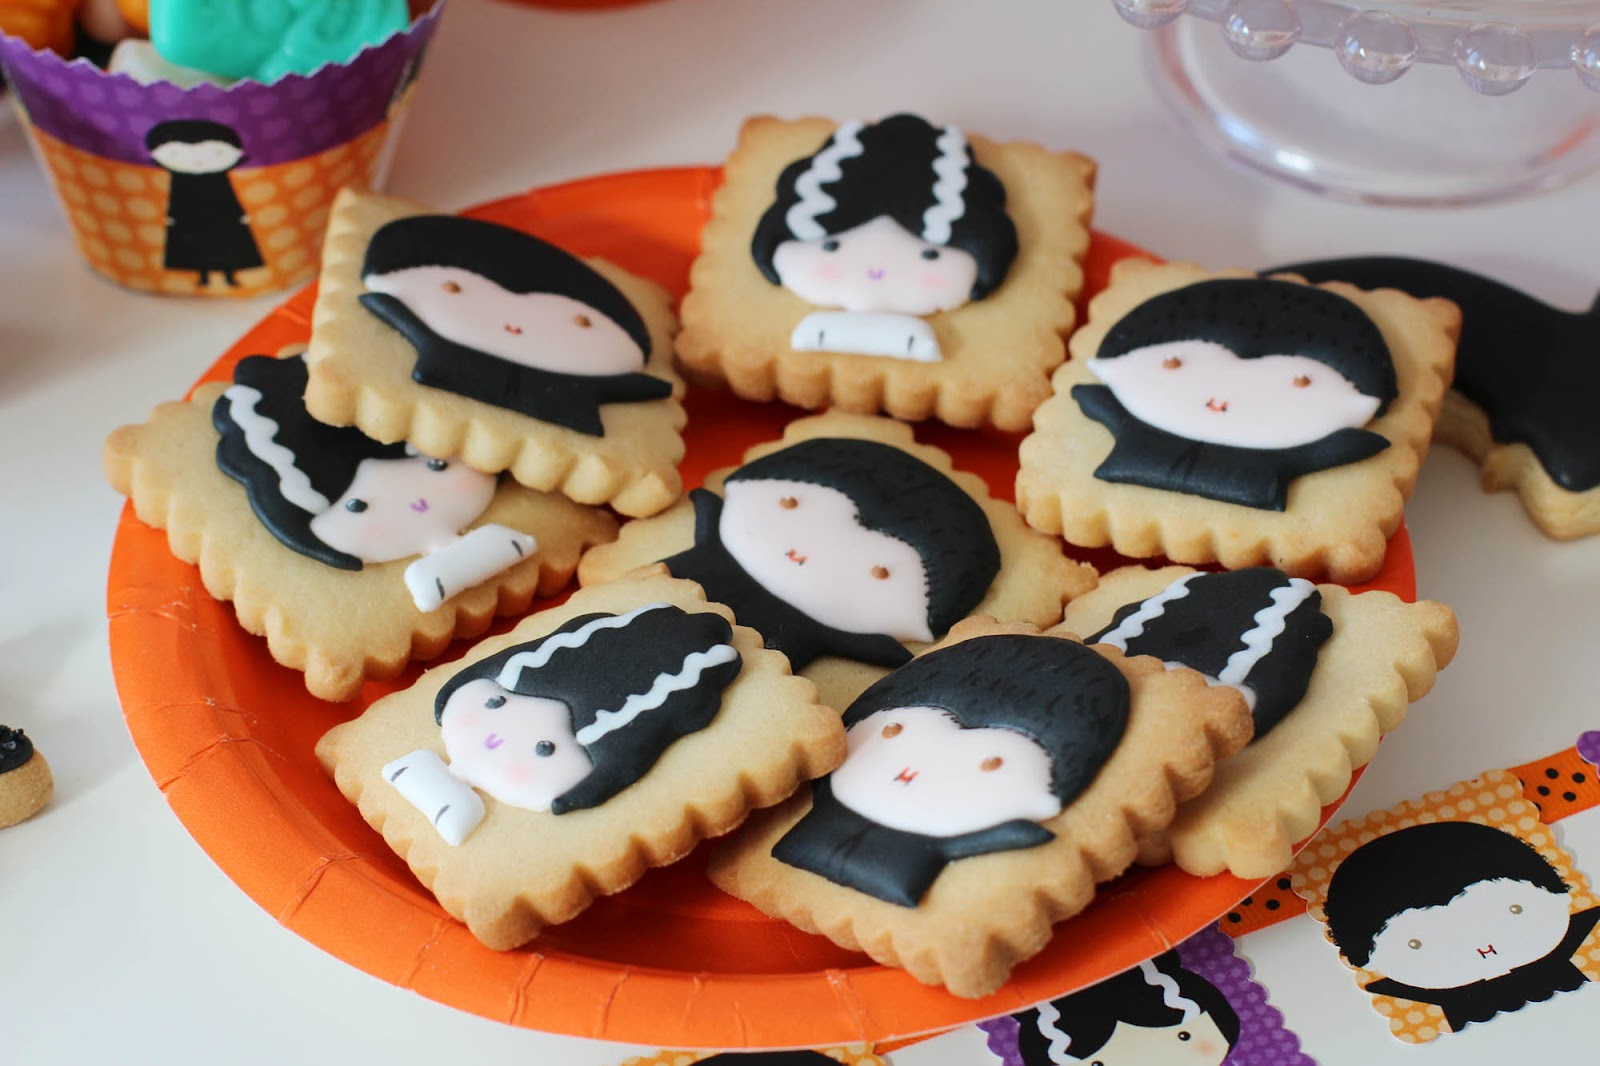 Galletas Decoradas Hallowen Galletas Decoradas Halloween Quotnaif Quot Postreadicción